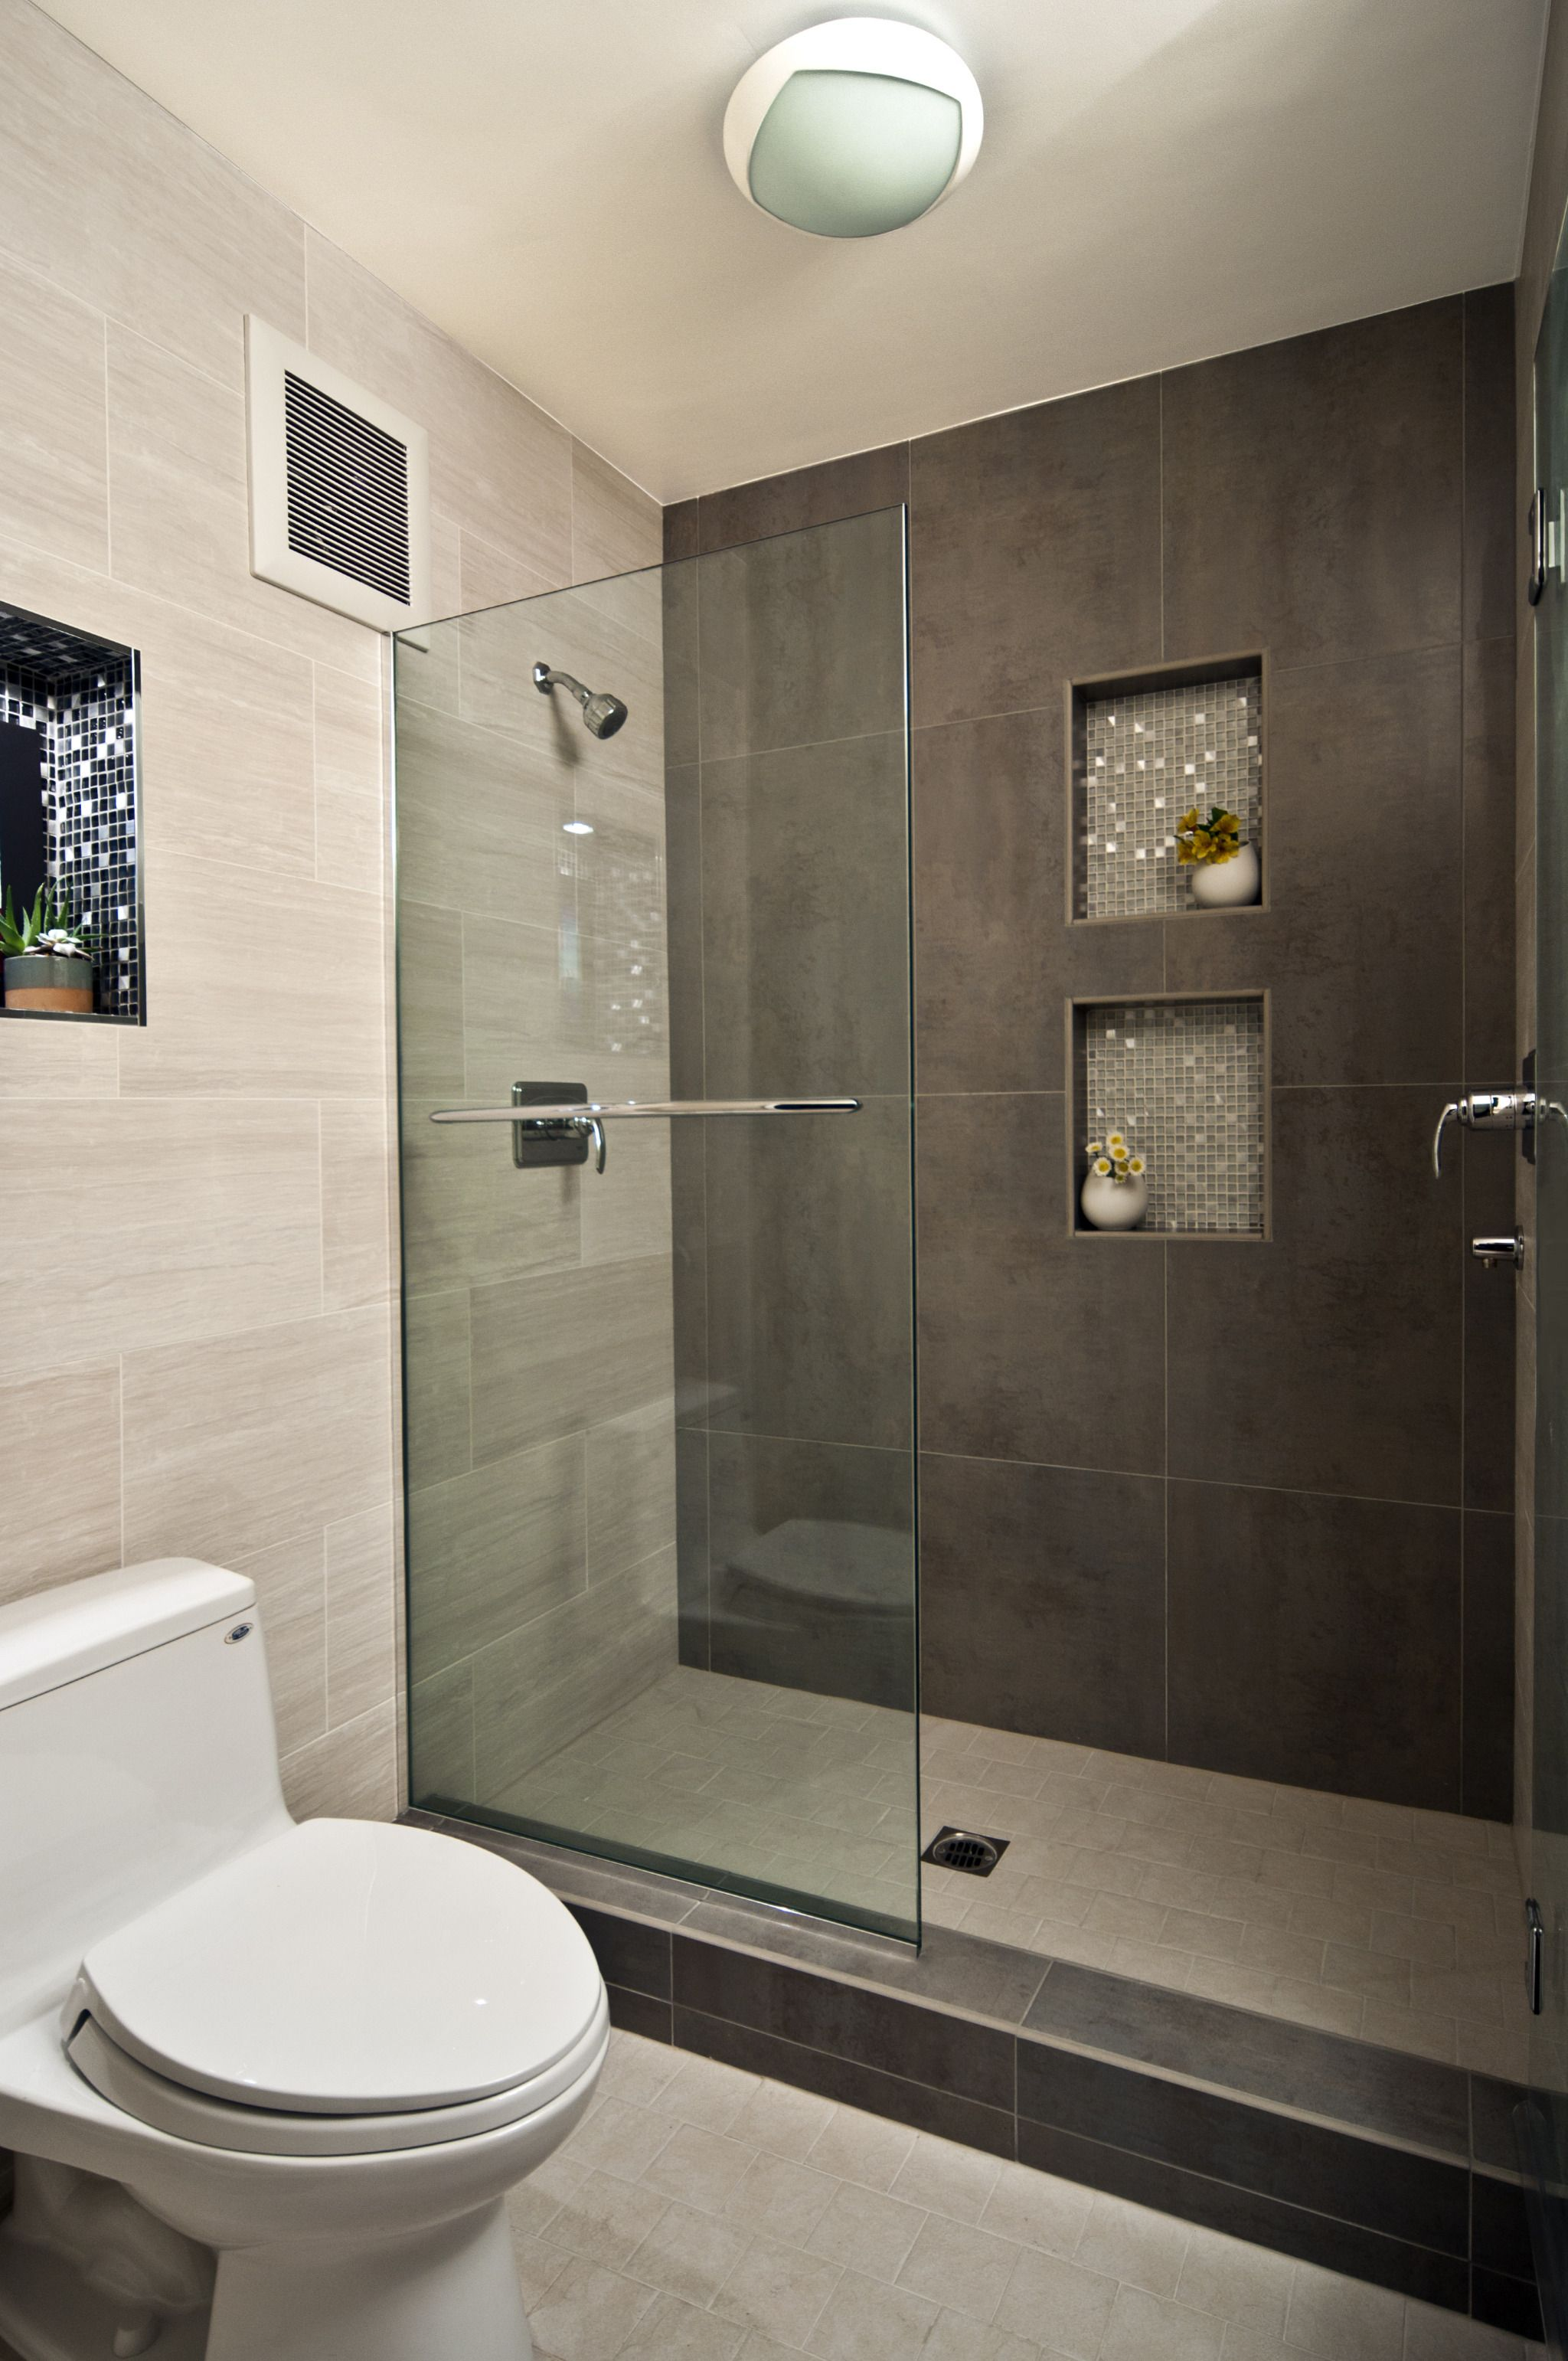 Showers Mtn View Ca Mountain View Kitchen Bath Designer Home Remodel Yana Mlynas Small Bathroom Remodel Bathroom Remodel Master Bathroom Design Small